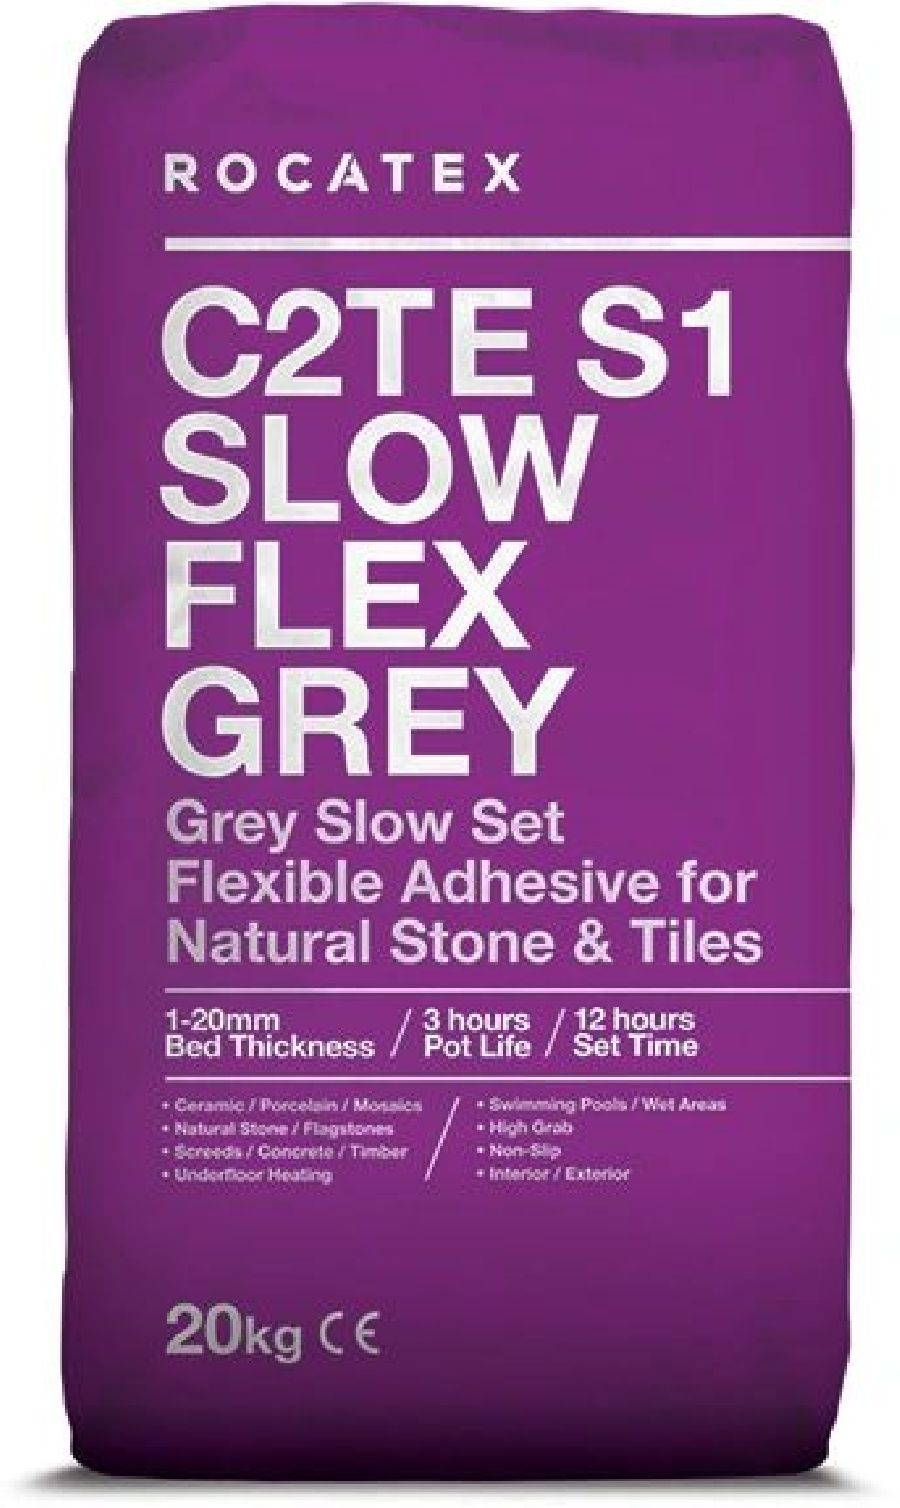 C2TE S1 Slow Flex Grey...